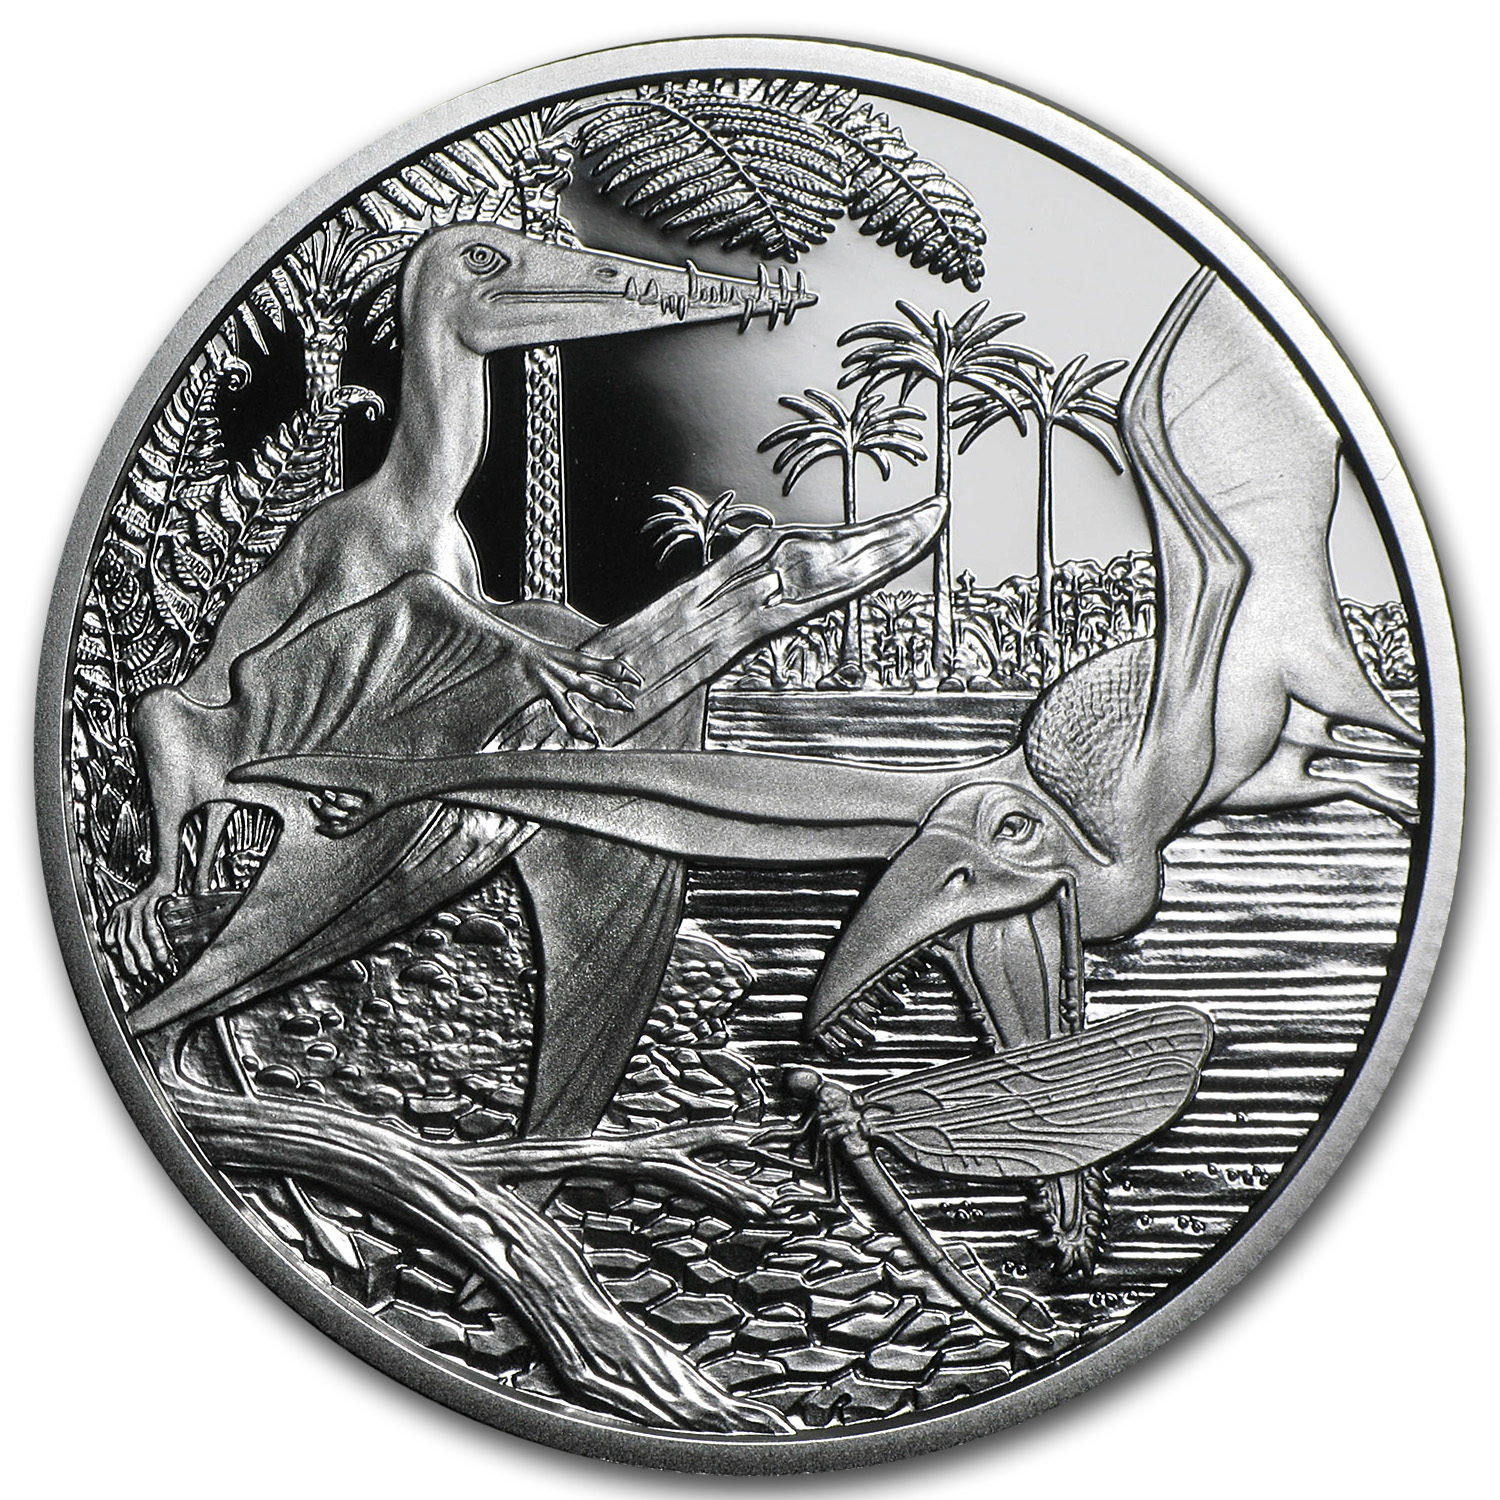 2013 Jurassic Life In The Air 20 Euro Silver Proof